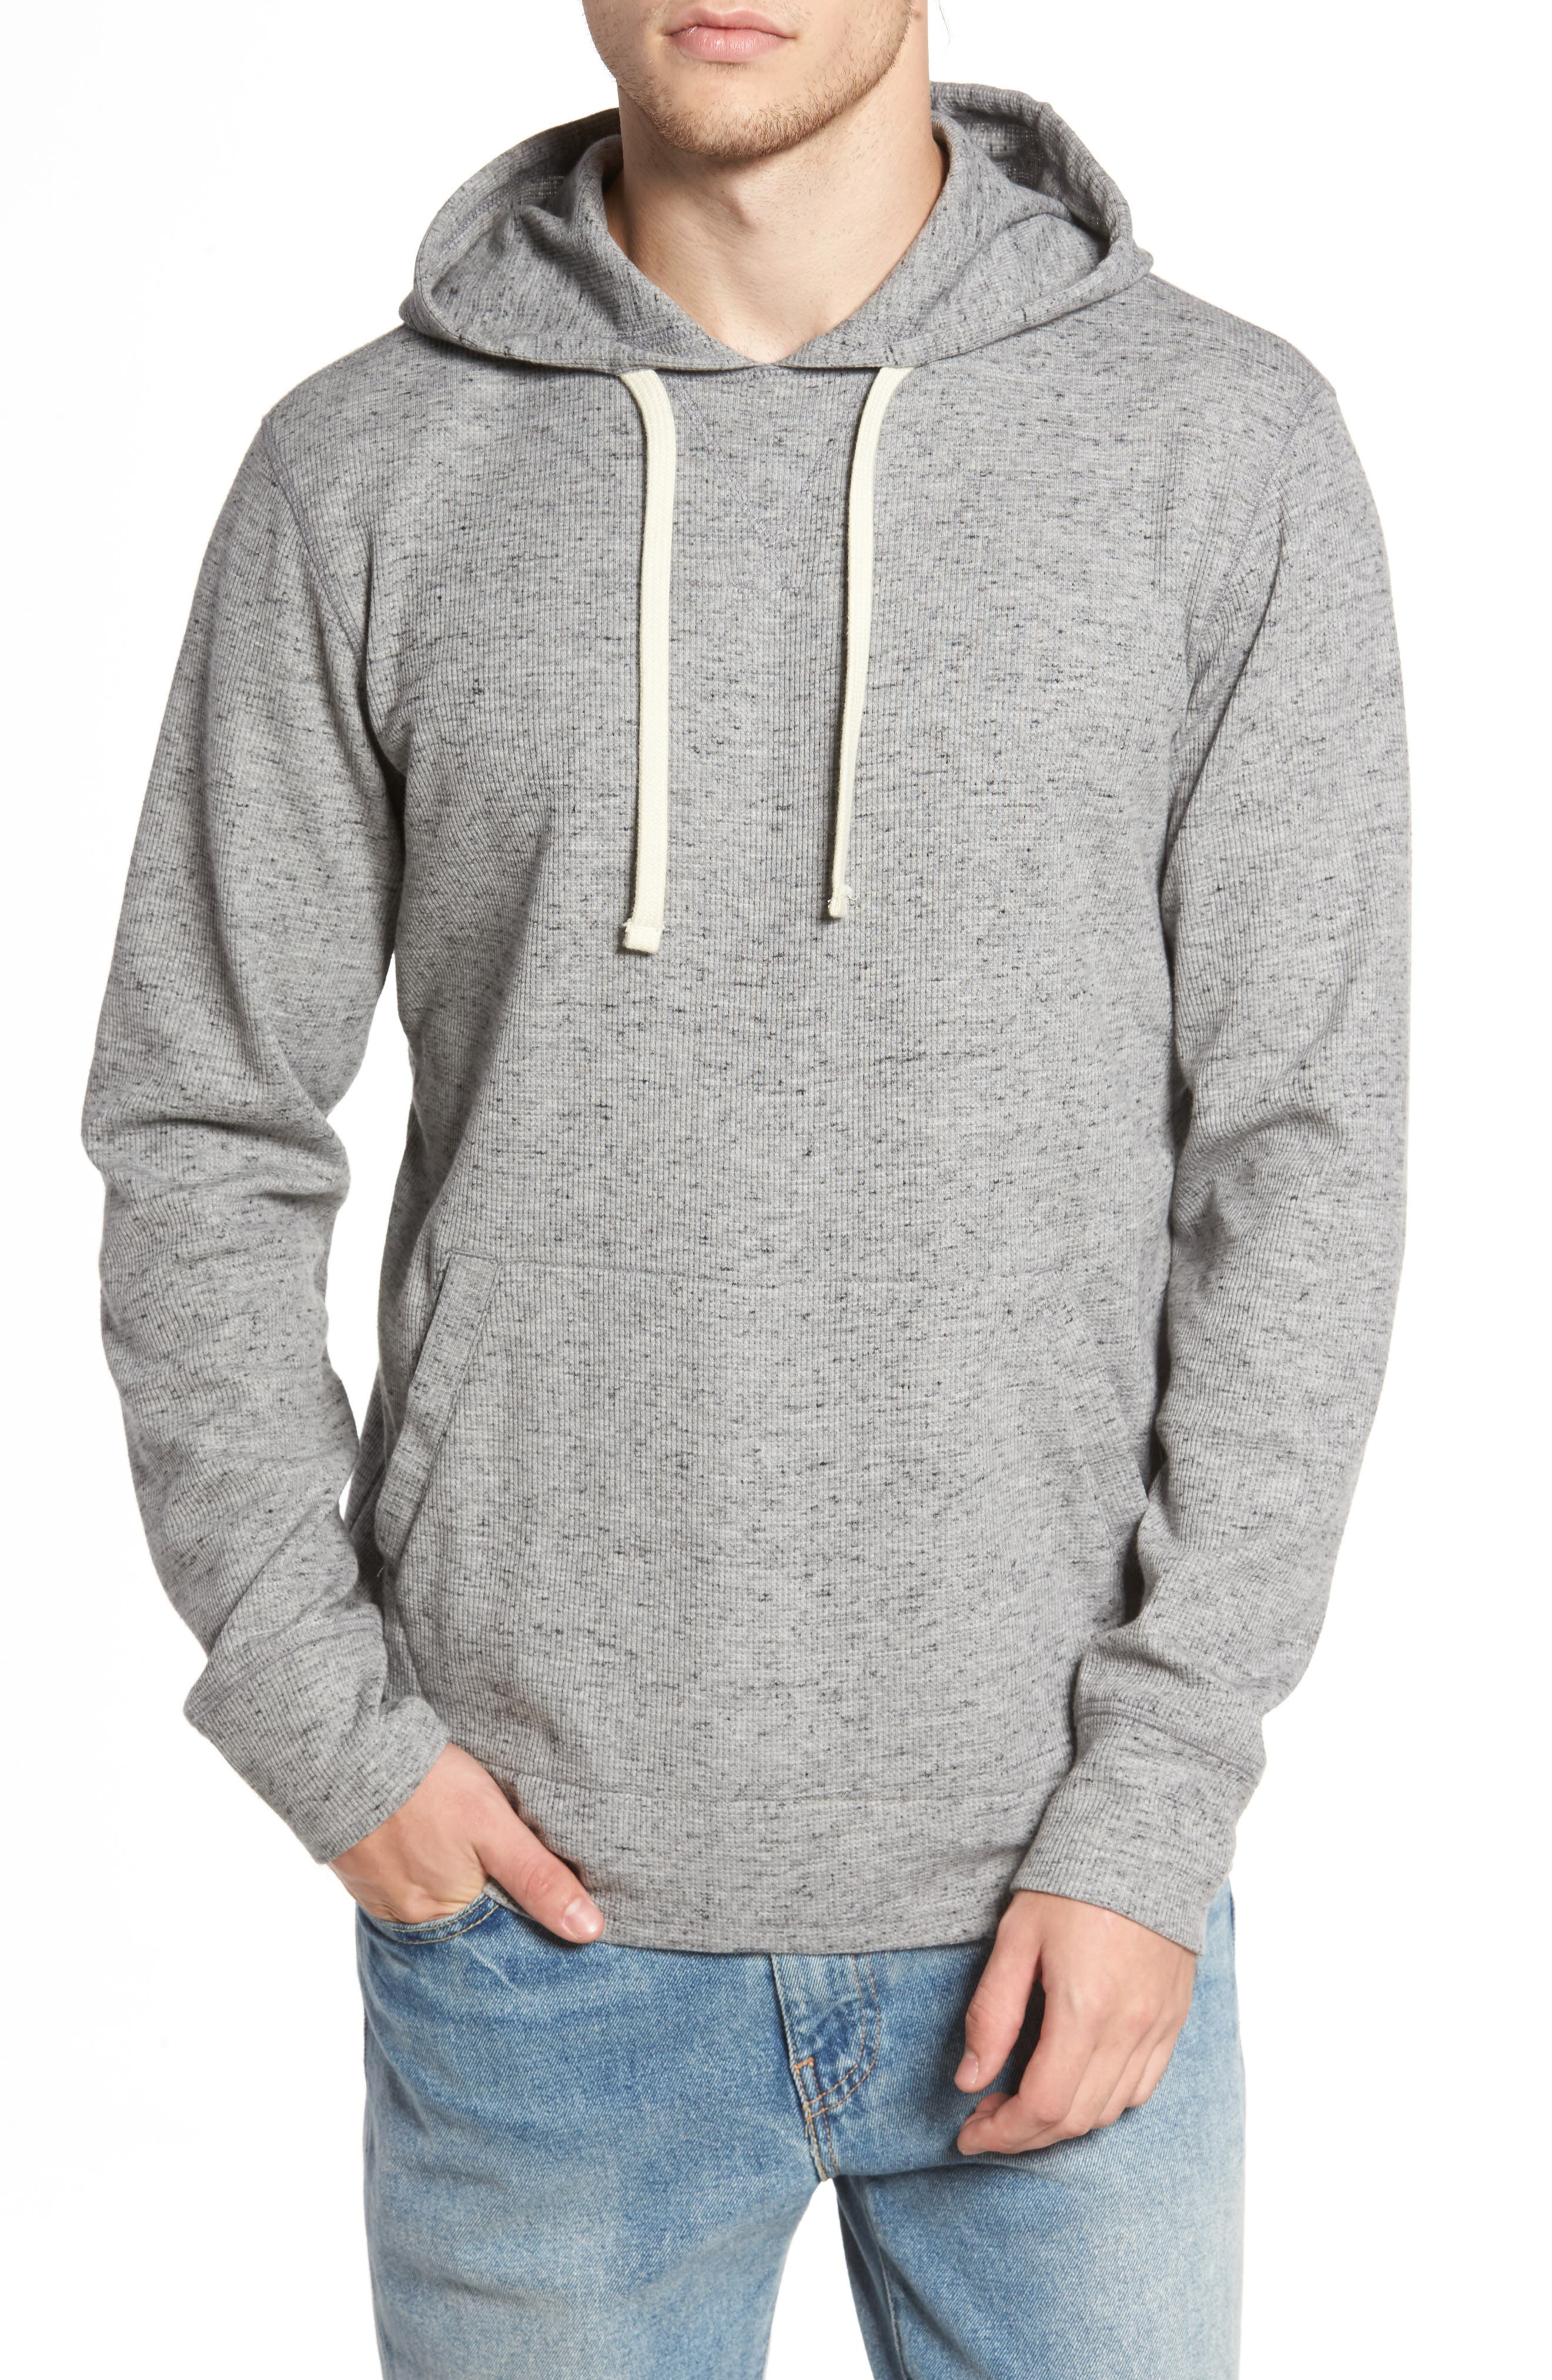 Boldin Thermal Pullover Hoodie,                             Main thumbnail 1, color,                             039